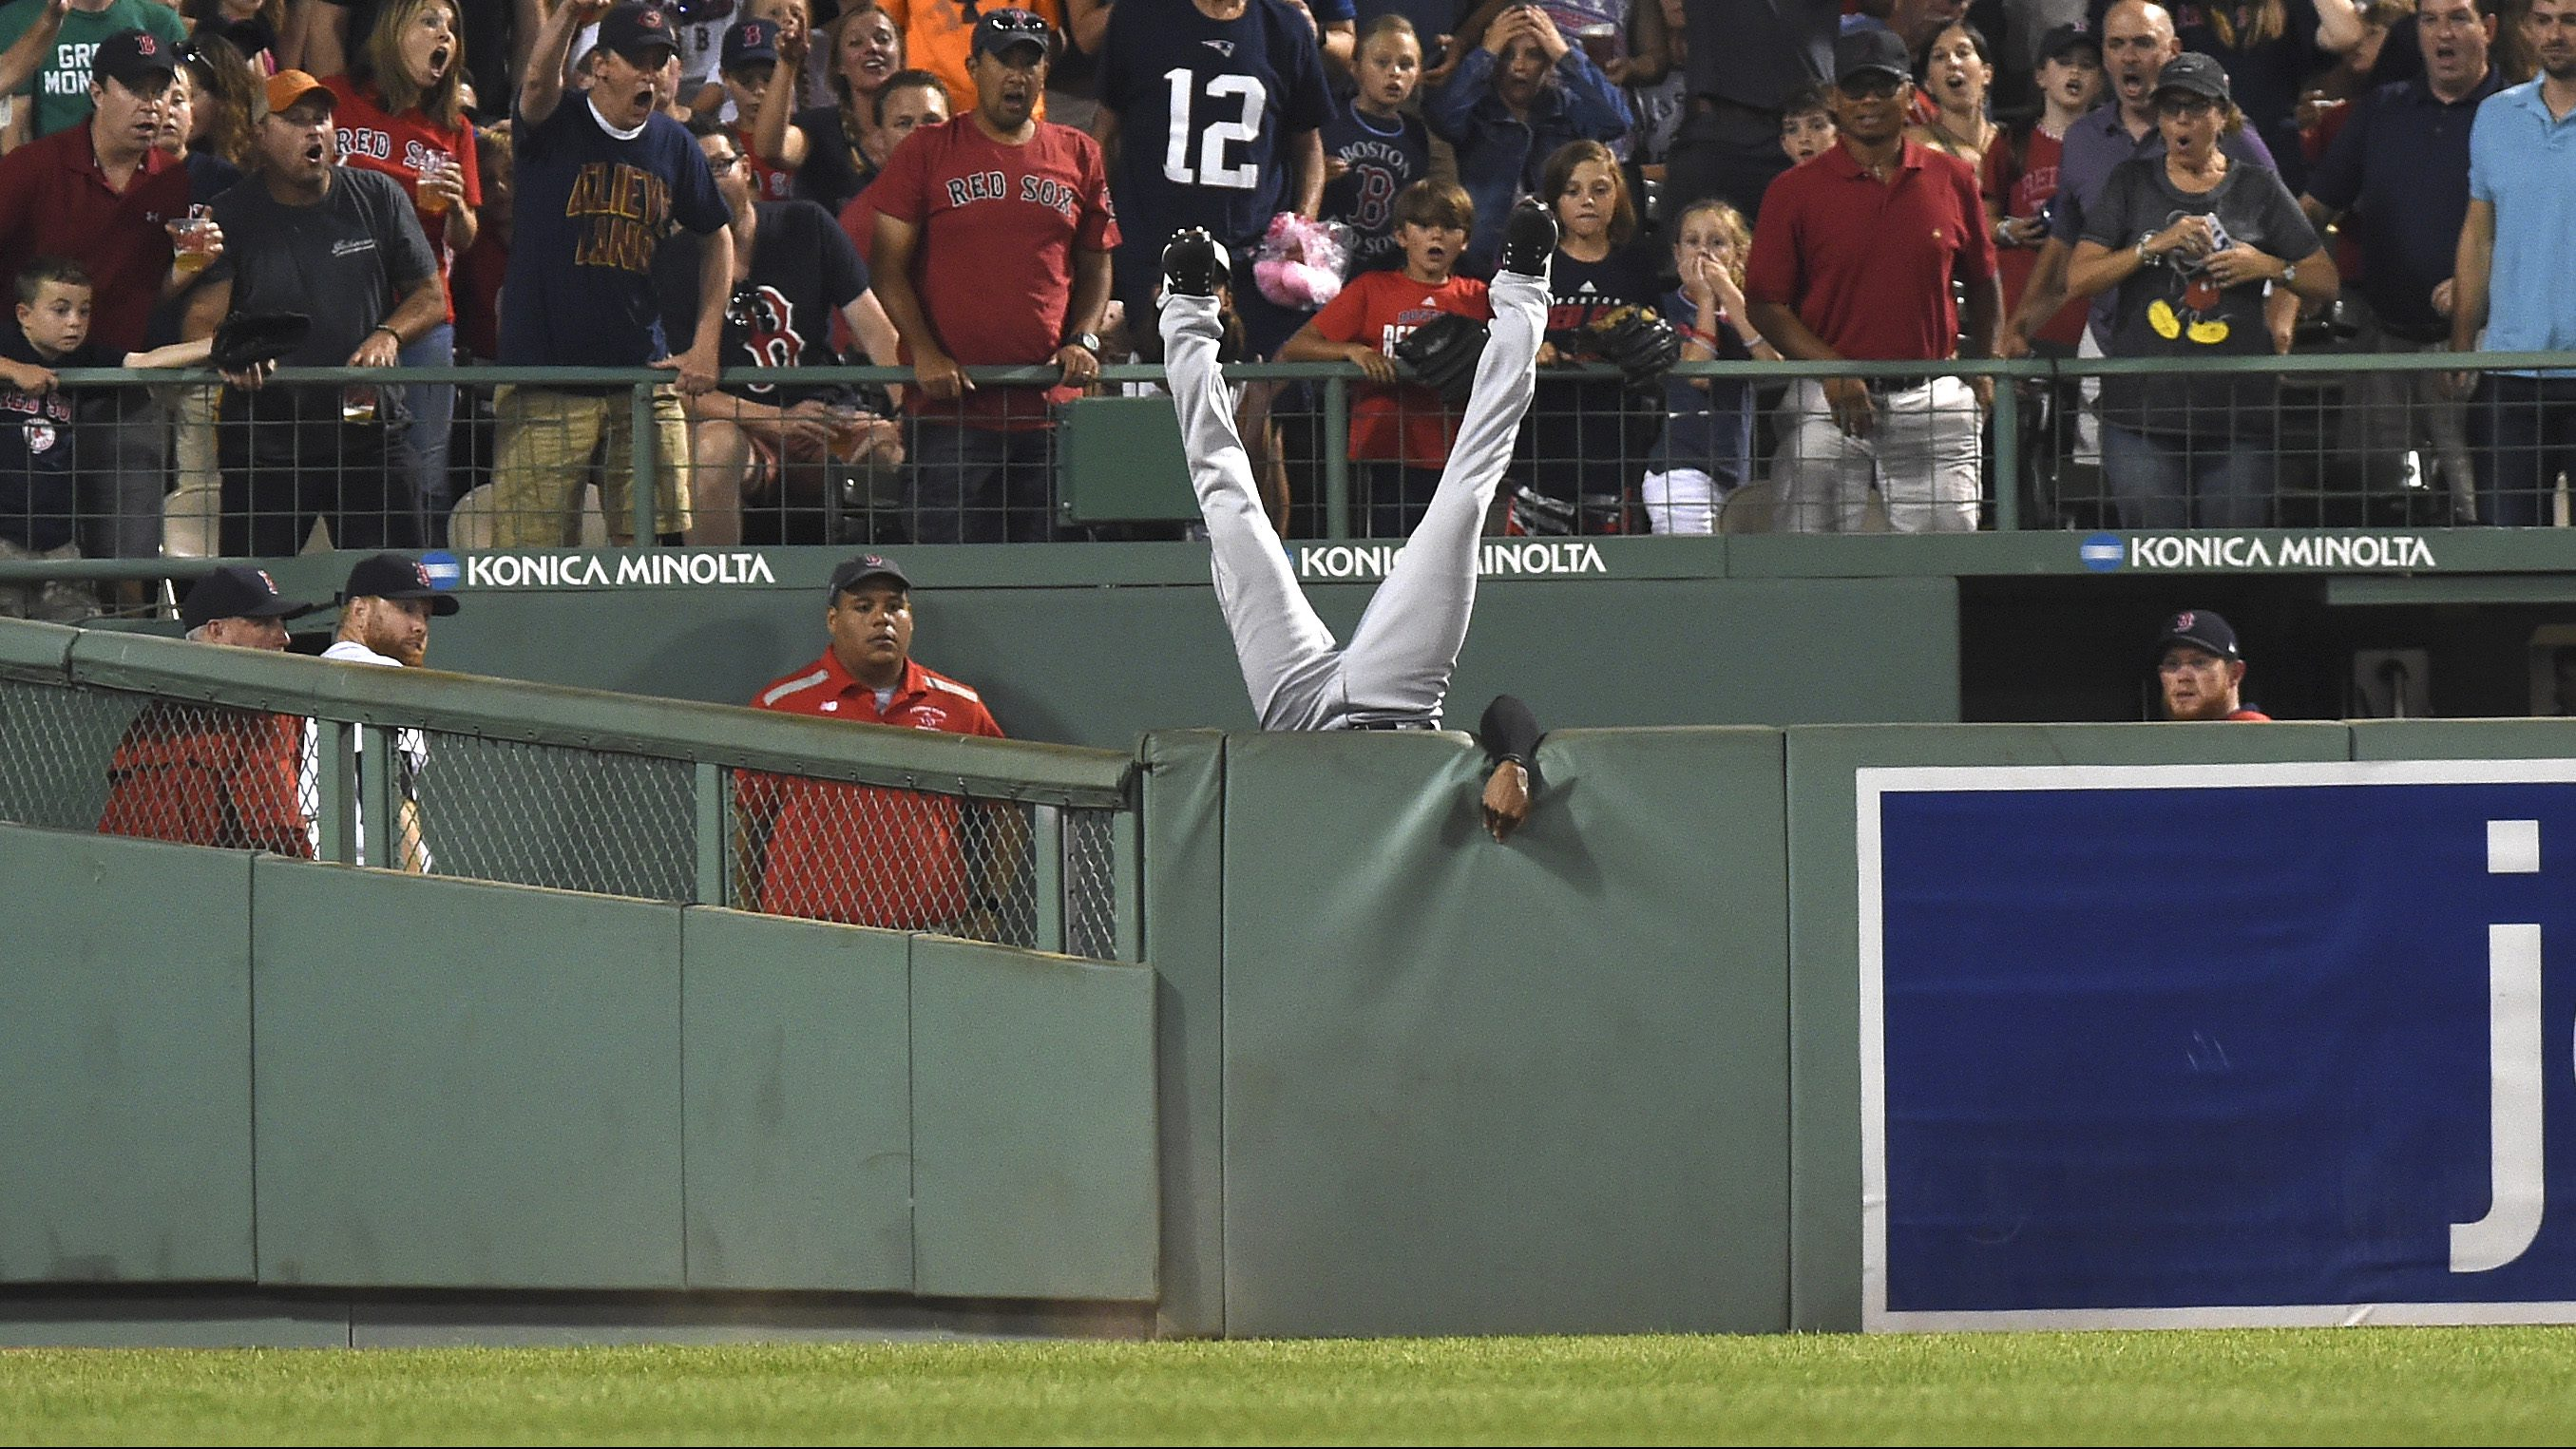 Aug 1, 2017; Boston, MA, USA; Cleveland Indians center fielder Austin Jackson (26) falls over the wall after making a catch to rob Boston Red Sox designated hitter Hanley Ramirez (not pictured) of a home run during the fifth inning at Fenway Park. Mandatory Credit: Bob DeChiara-USA TODAY Sports - RTS1A1H1